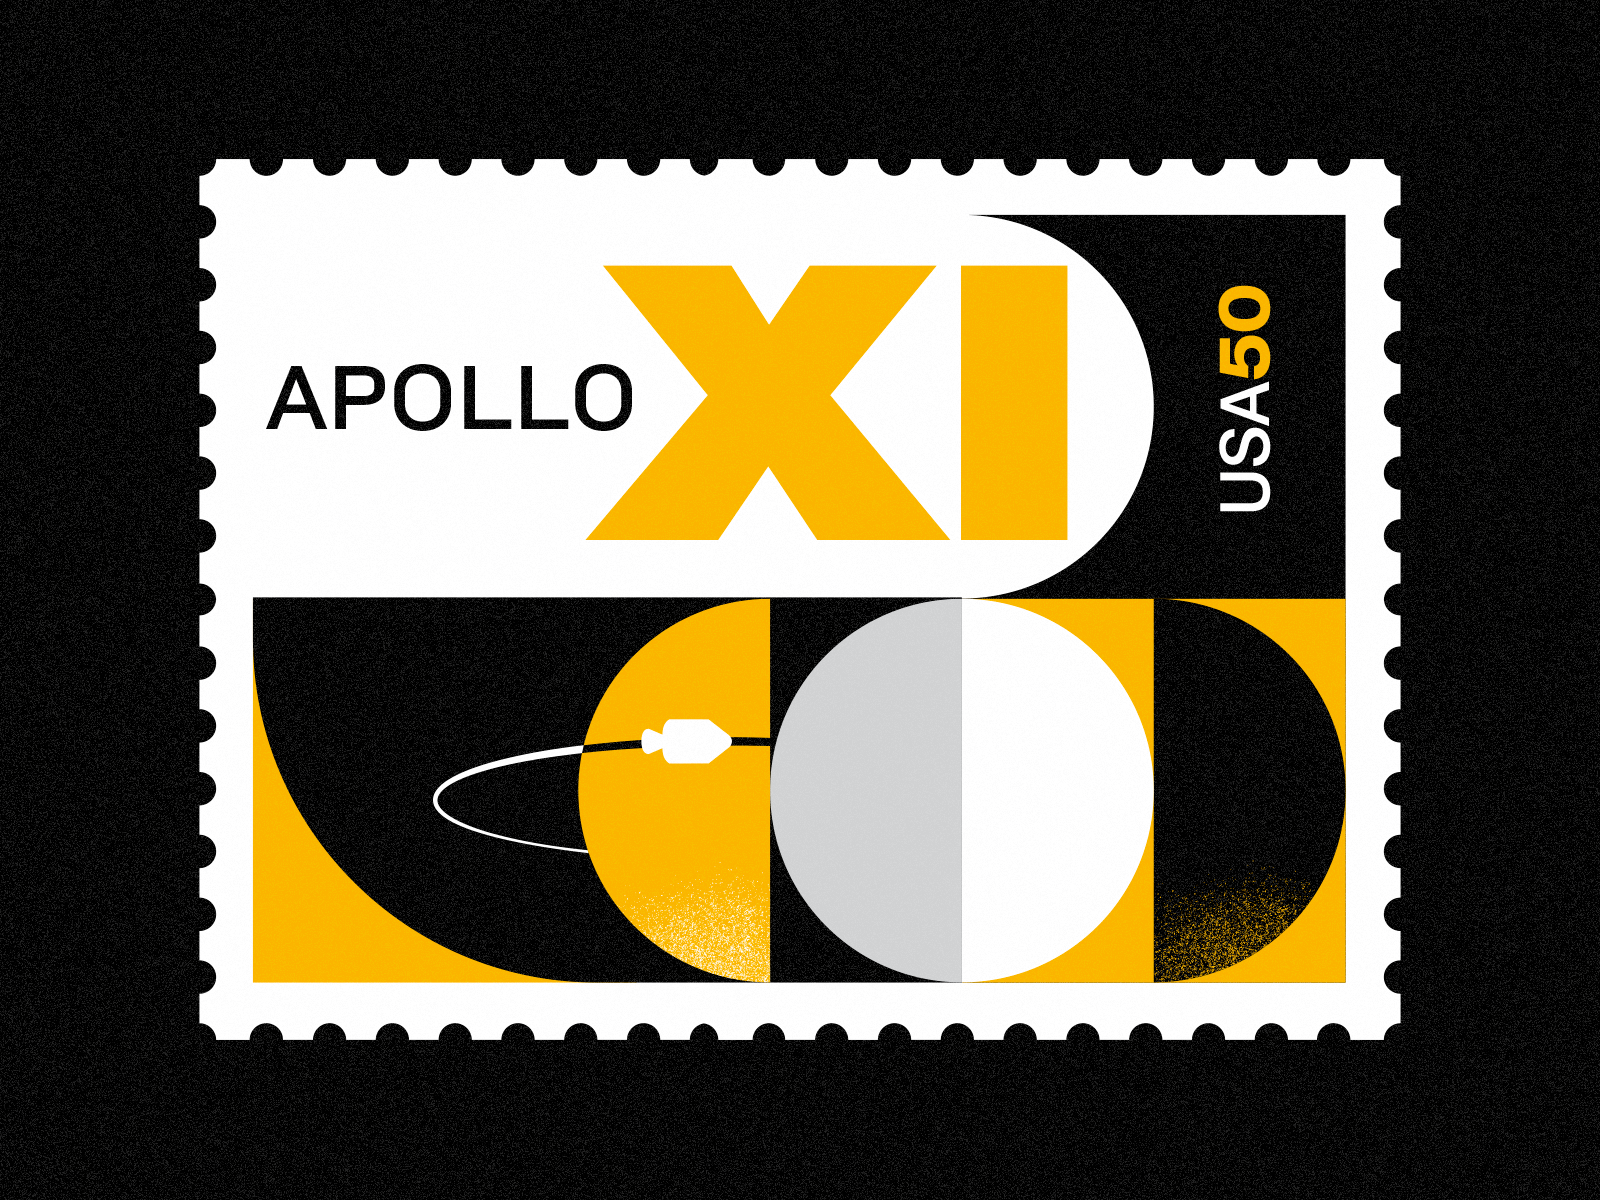 Nasa stamp3 johnmata